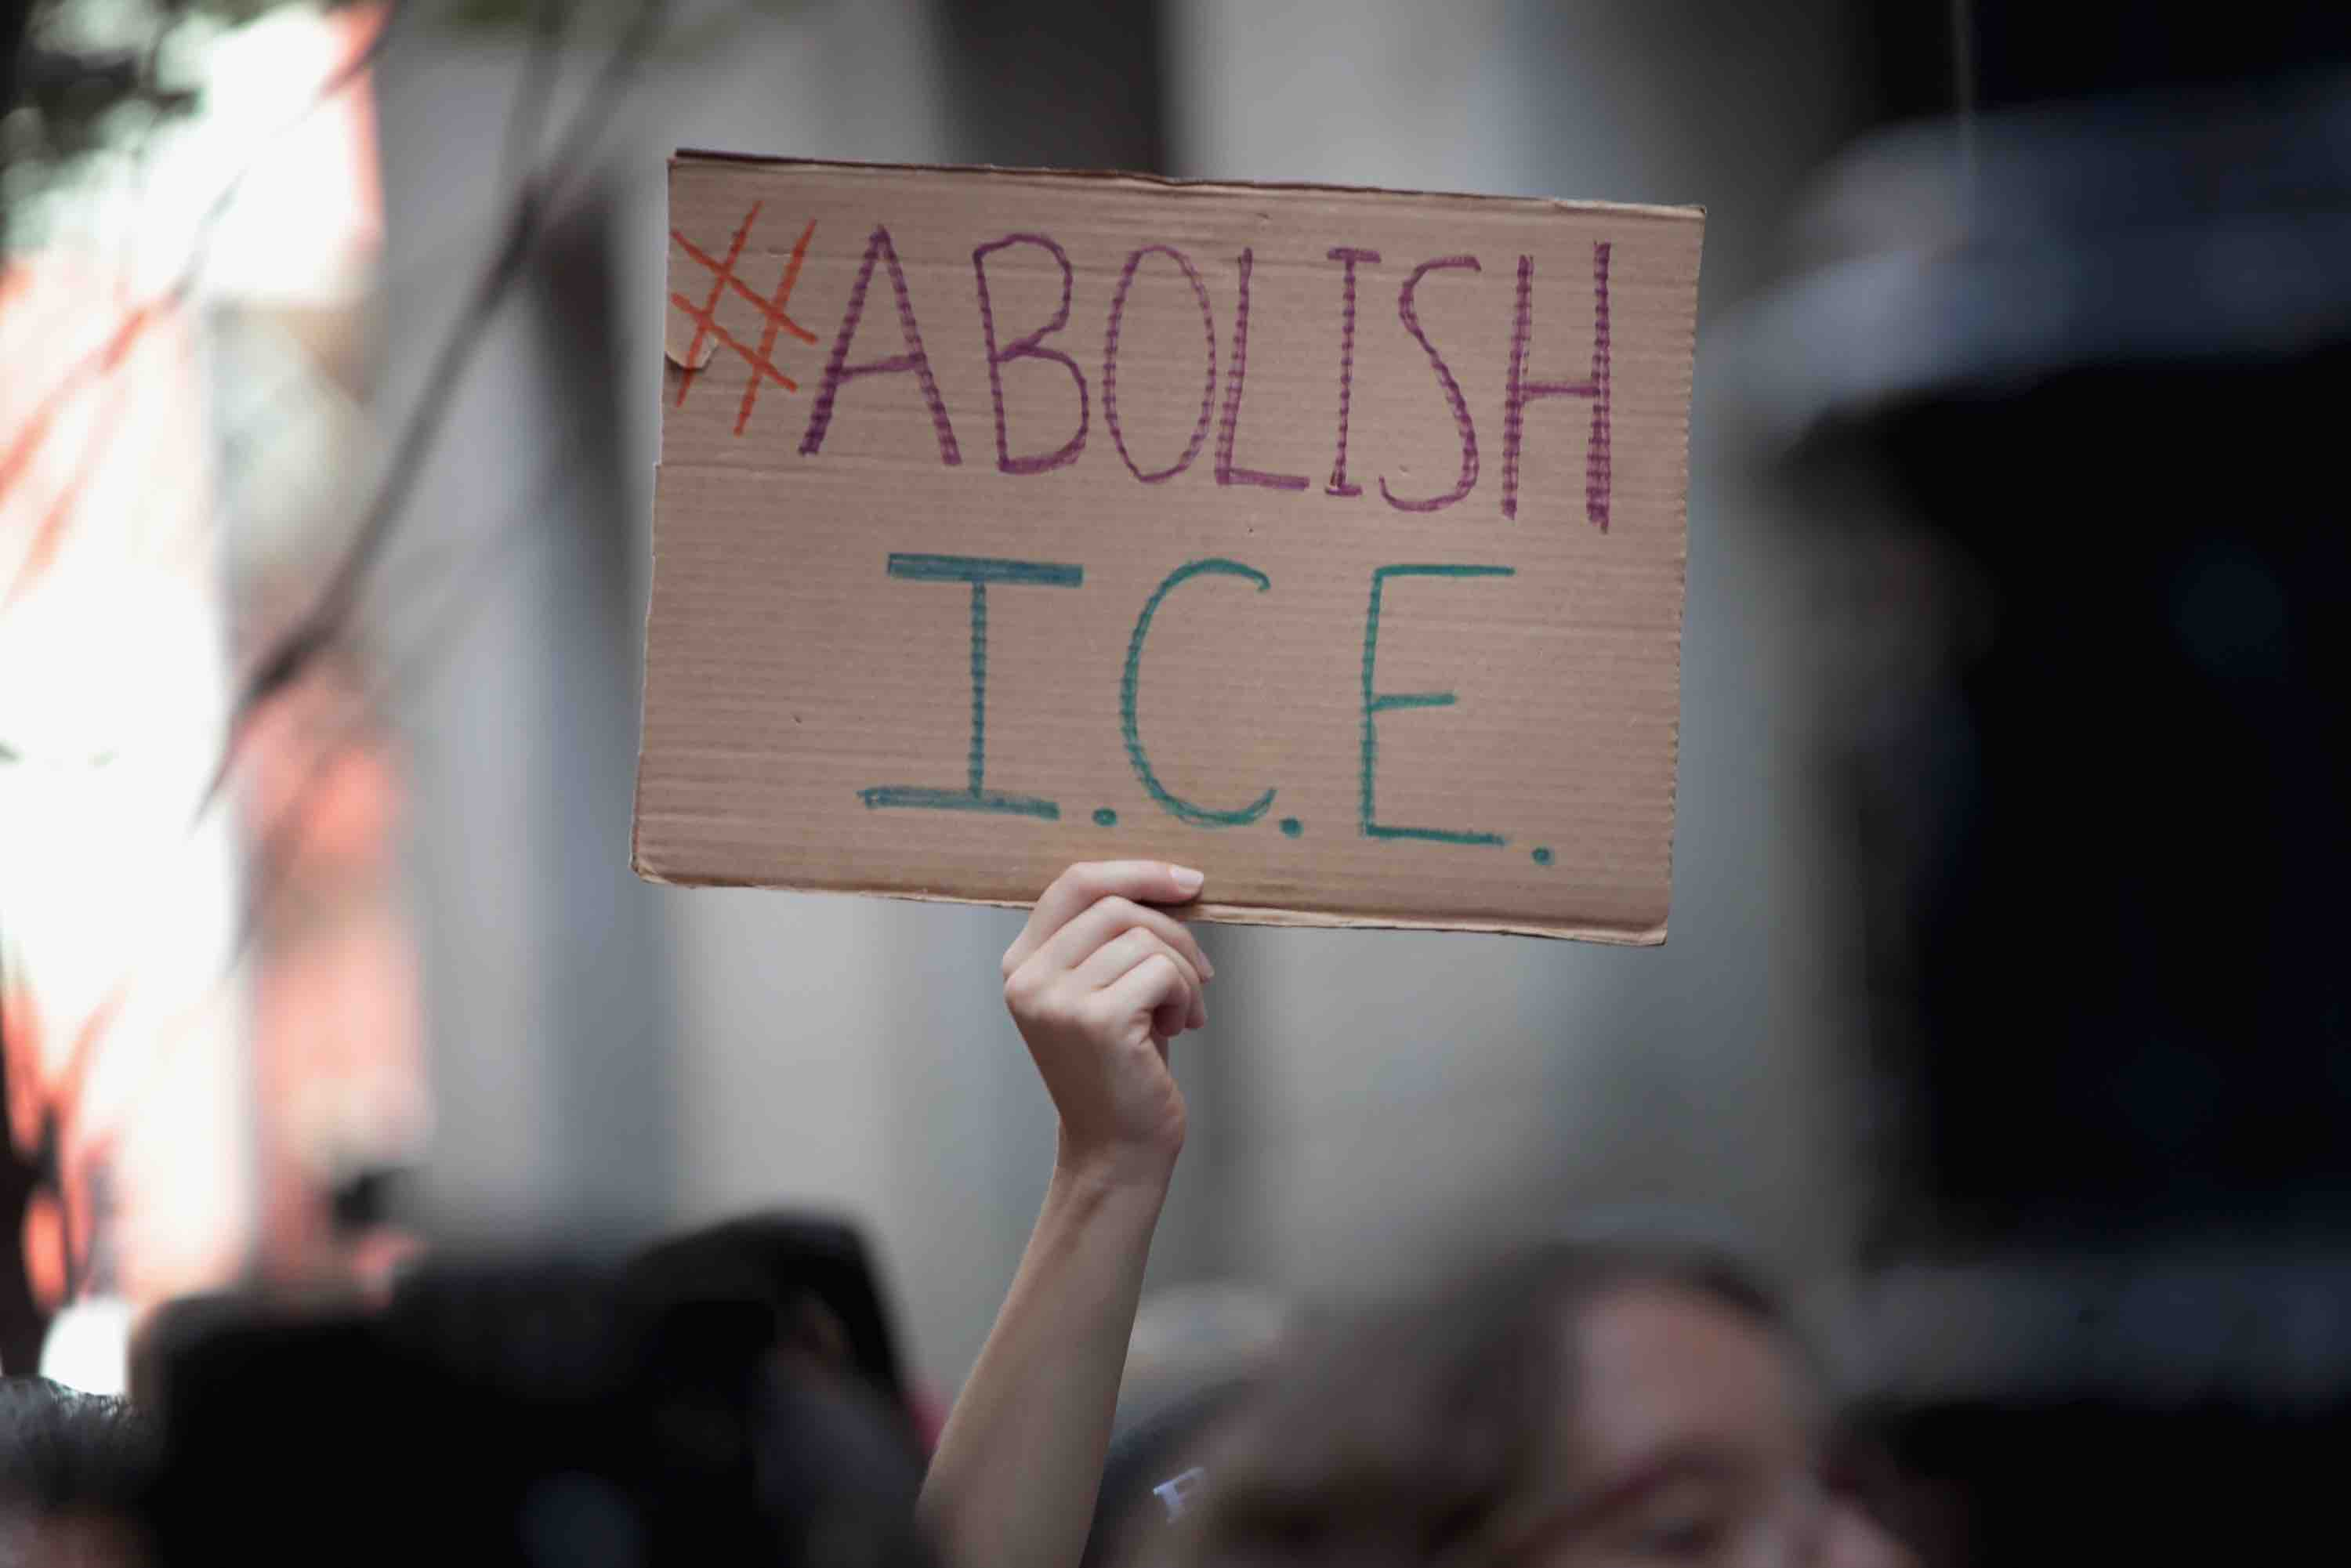 36 Jewish Activists Arrested After Blocking Entrance to ICE Detention Center